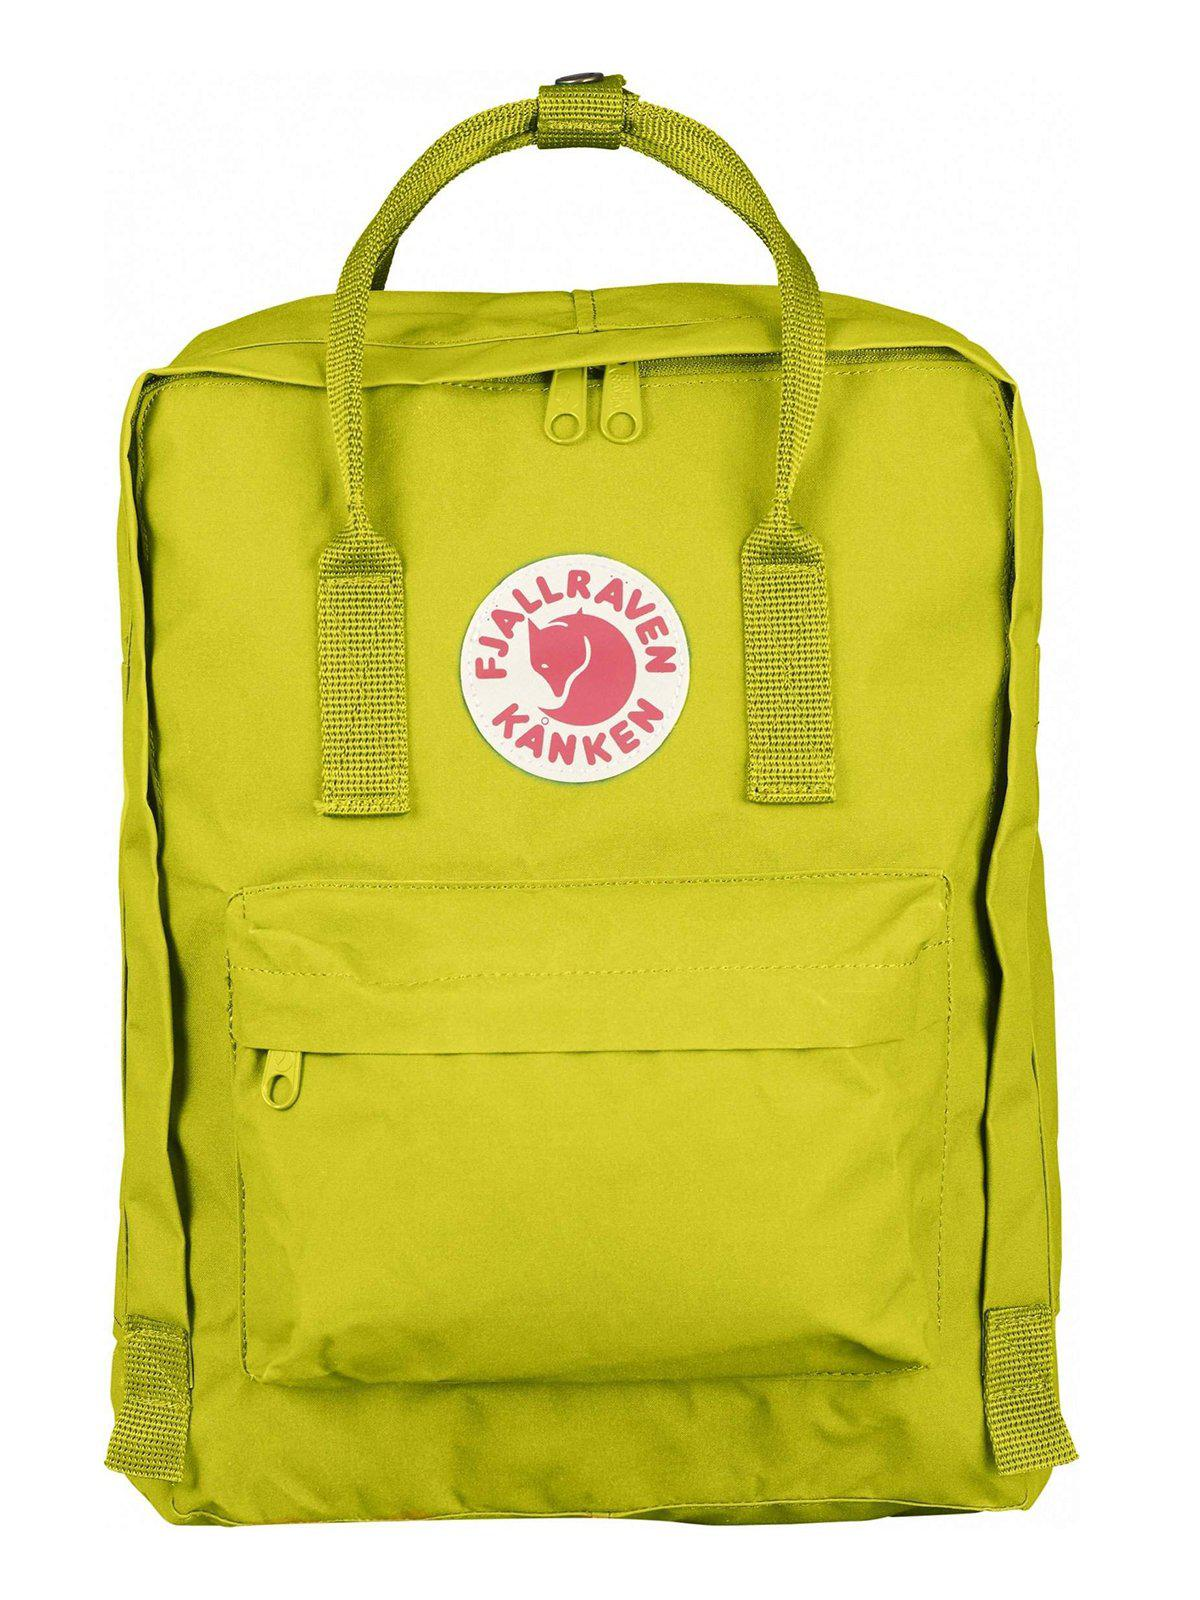 Fjallraven Kanken Classic Backpack Birch Green - MORE by Morello Indonesia